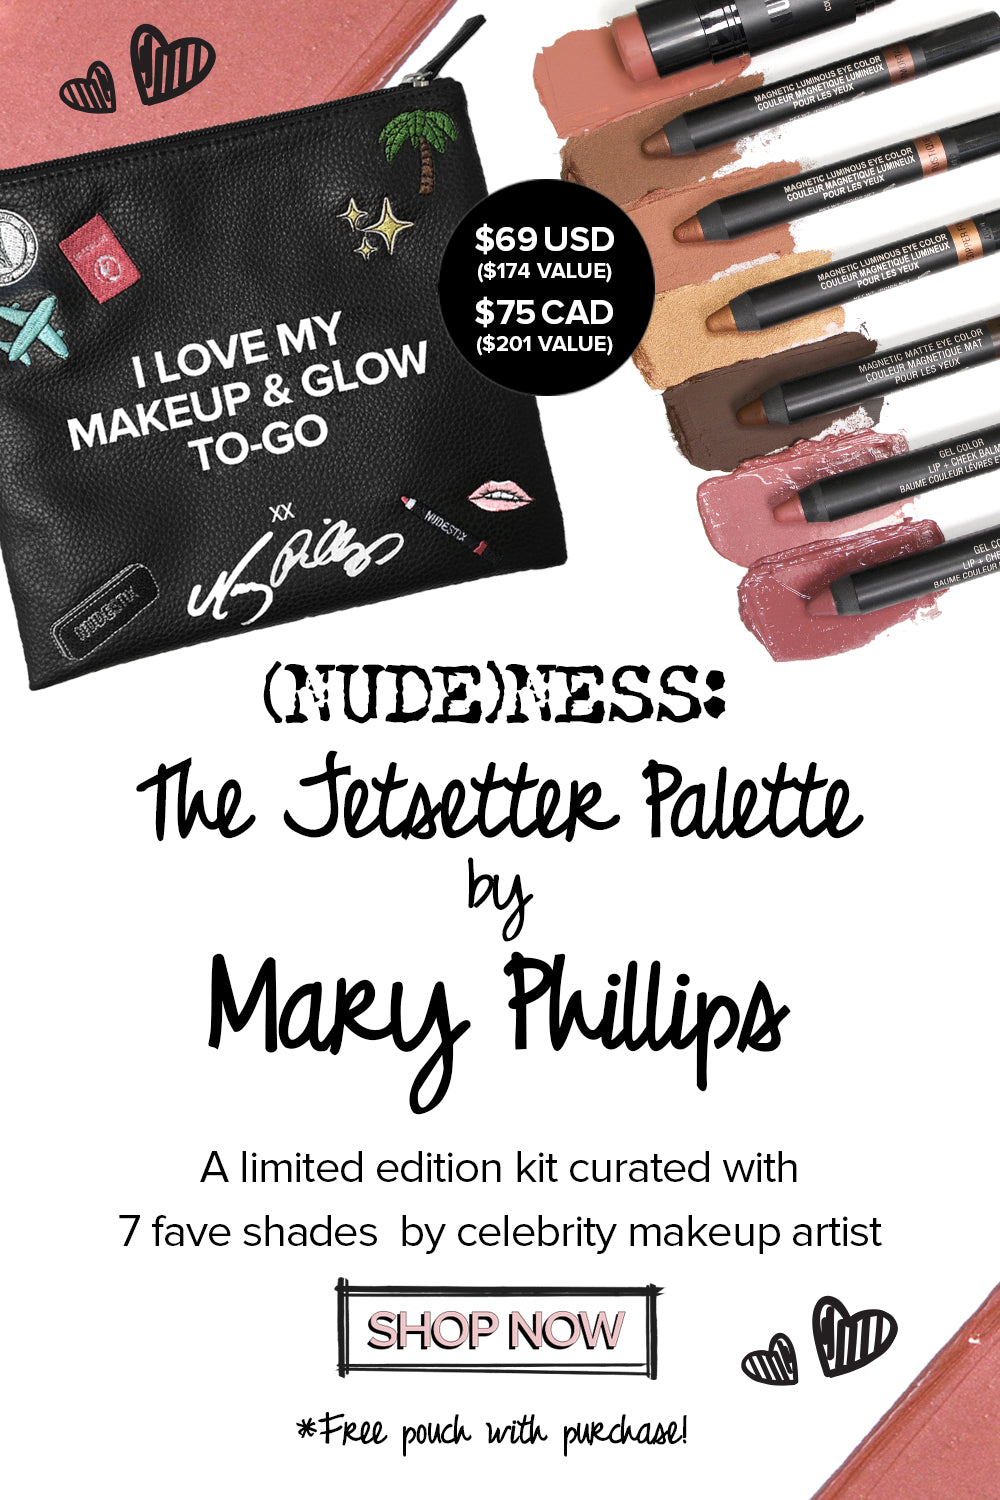 Jetsetter Palette by Mary Phillips